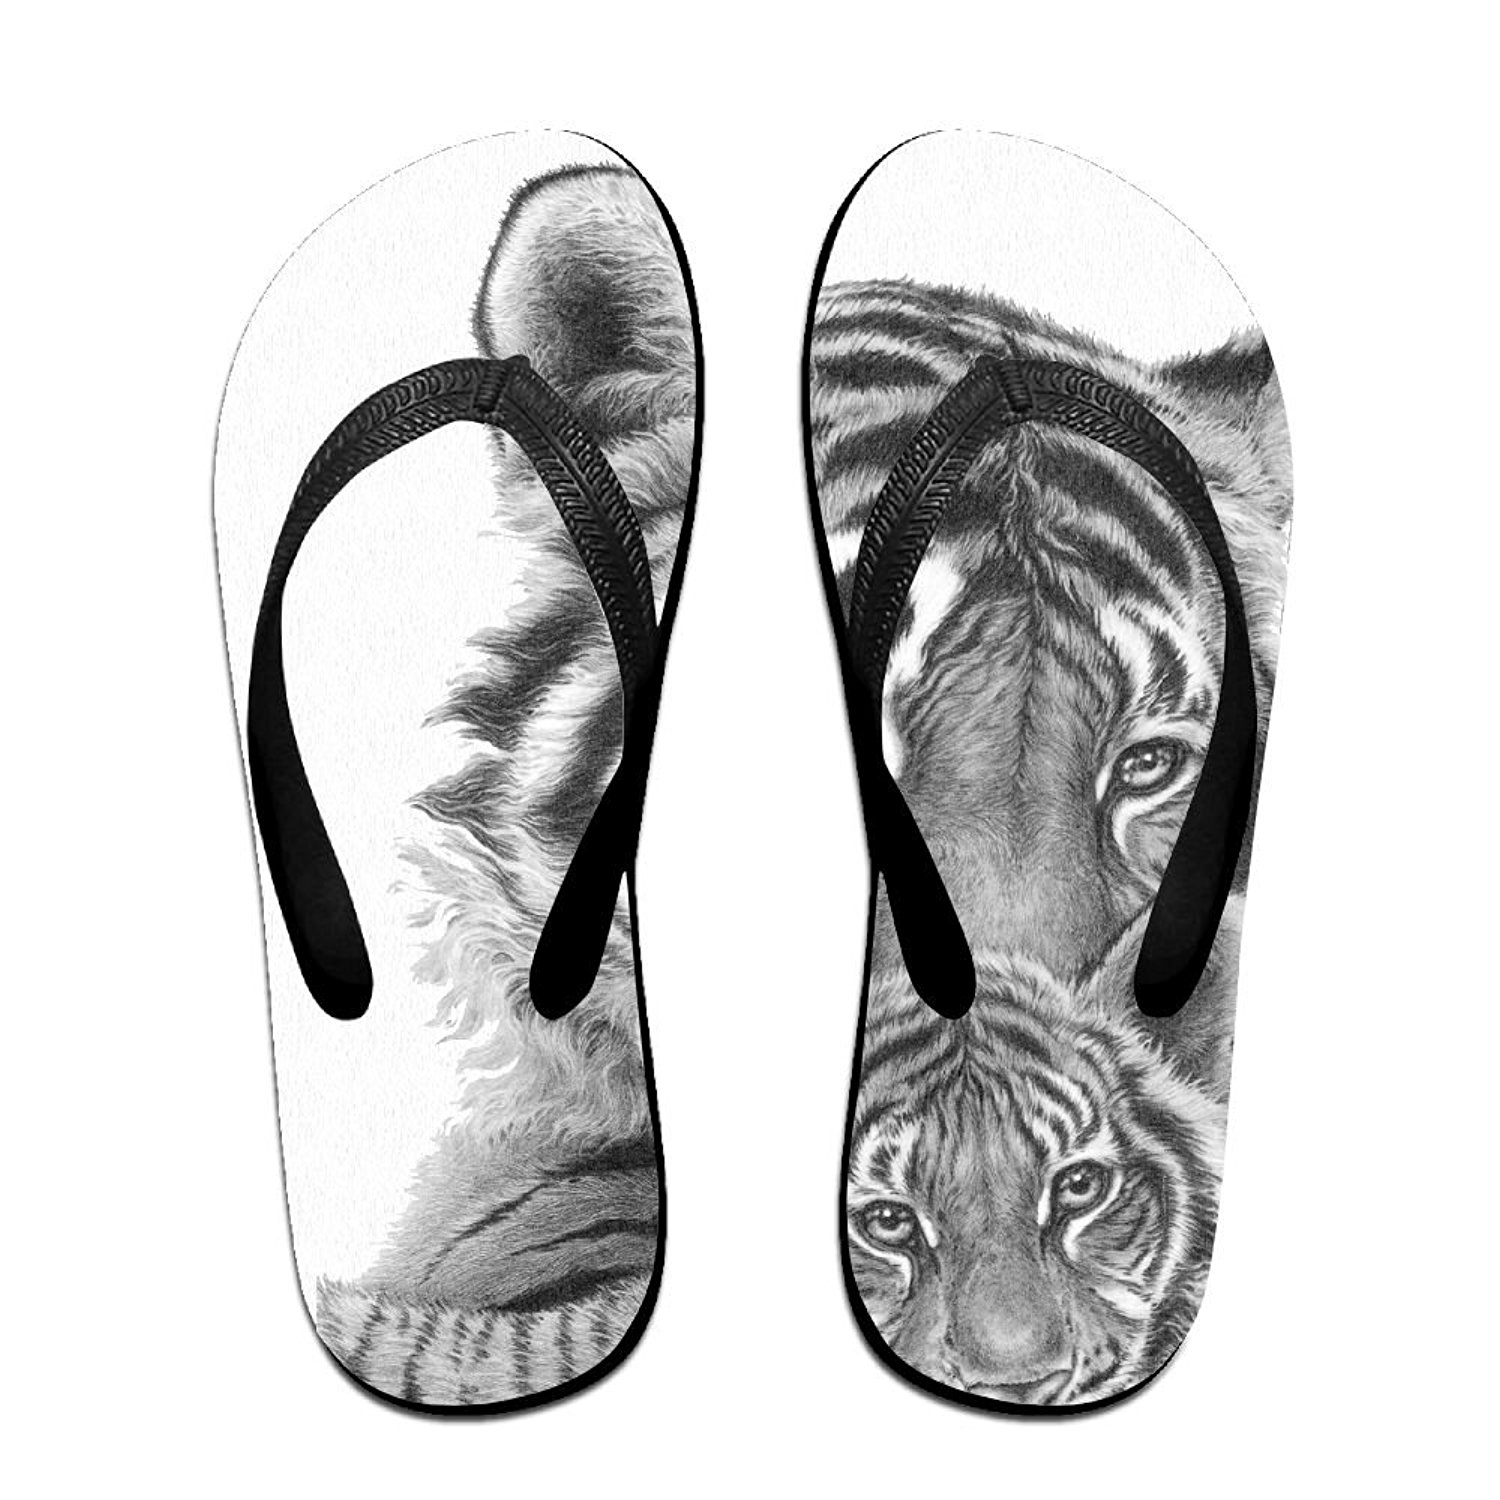 8ffc6f8f1 Get Quotations · QR FUNK Unisex Bengal Tiger And Tiger Baby Summer  Comfortable Flip Flops Beach Slippers